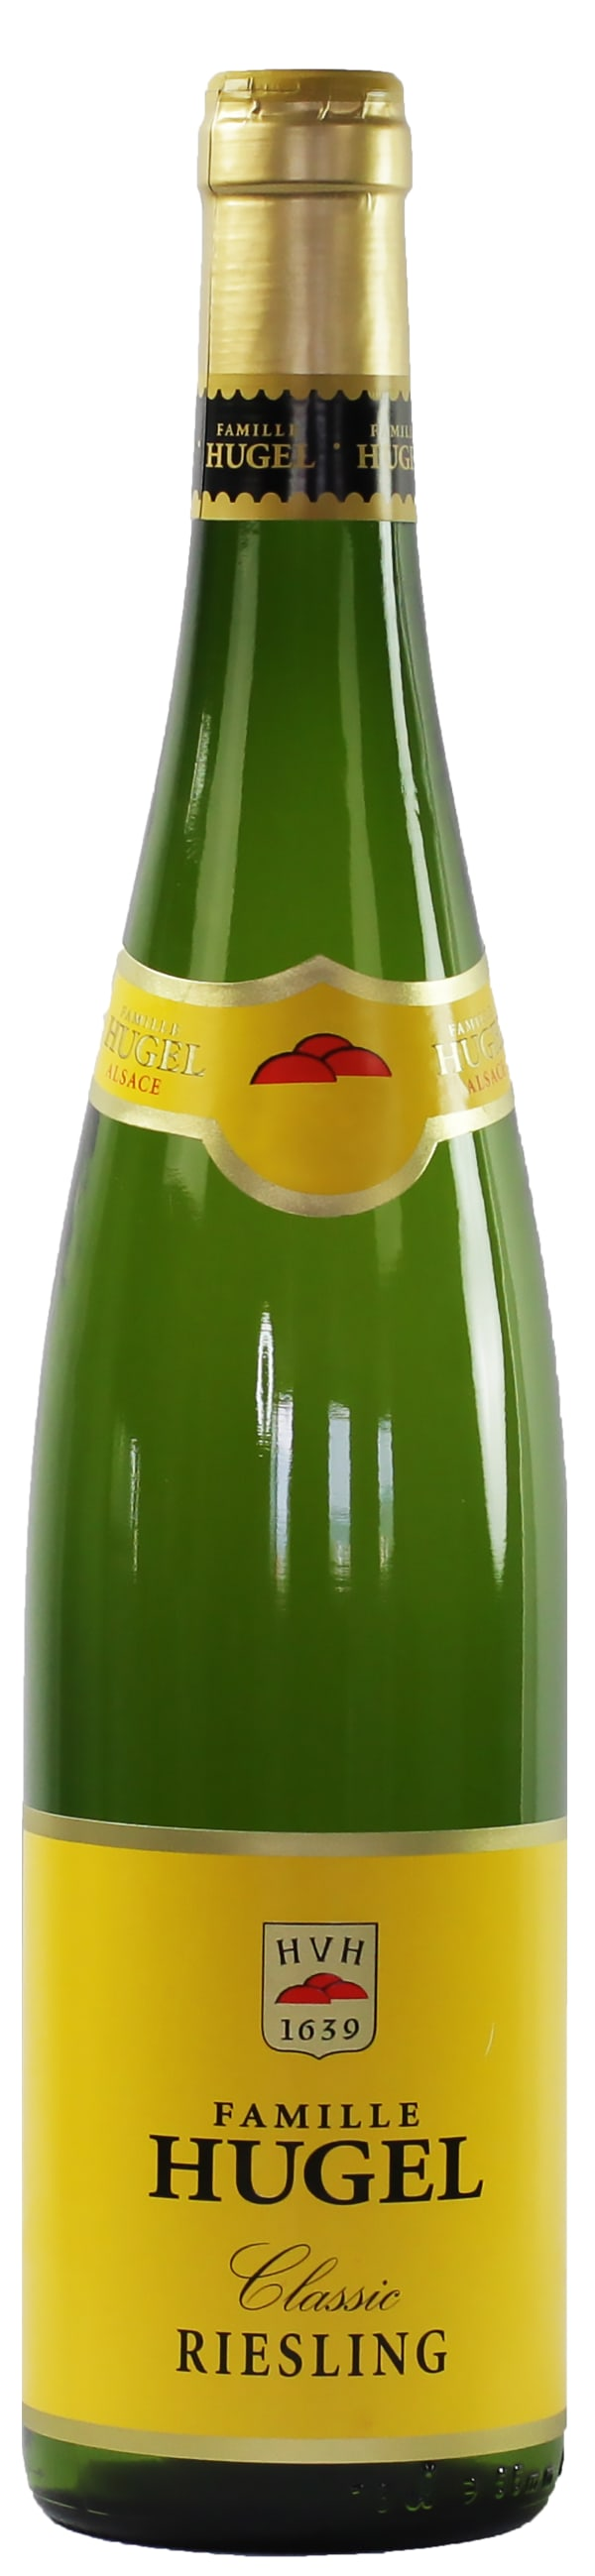 Famille Hugel Classic Riesling 2015